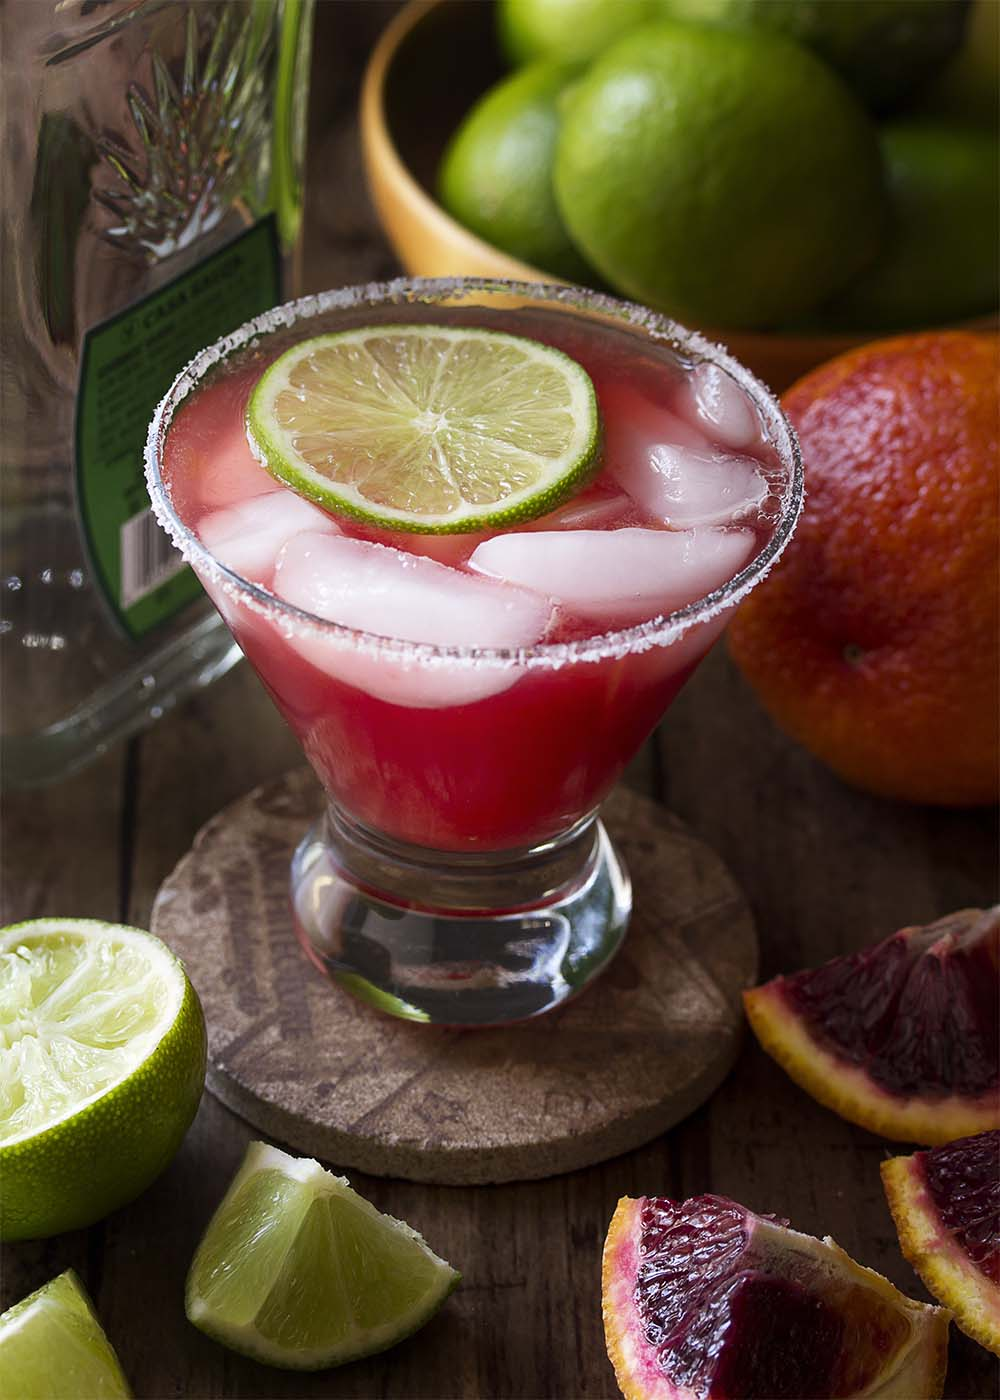 A blood orange margarita in a glass with ice and a slice of lime.